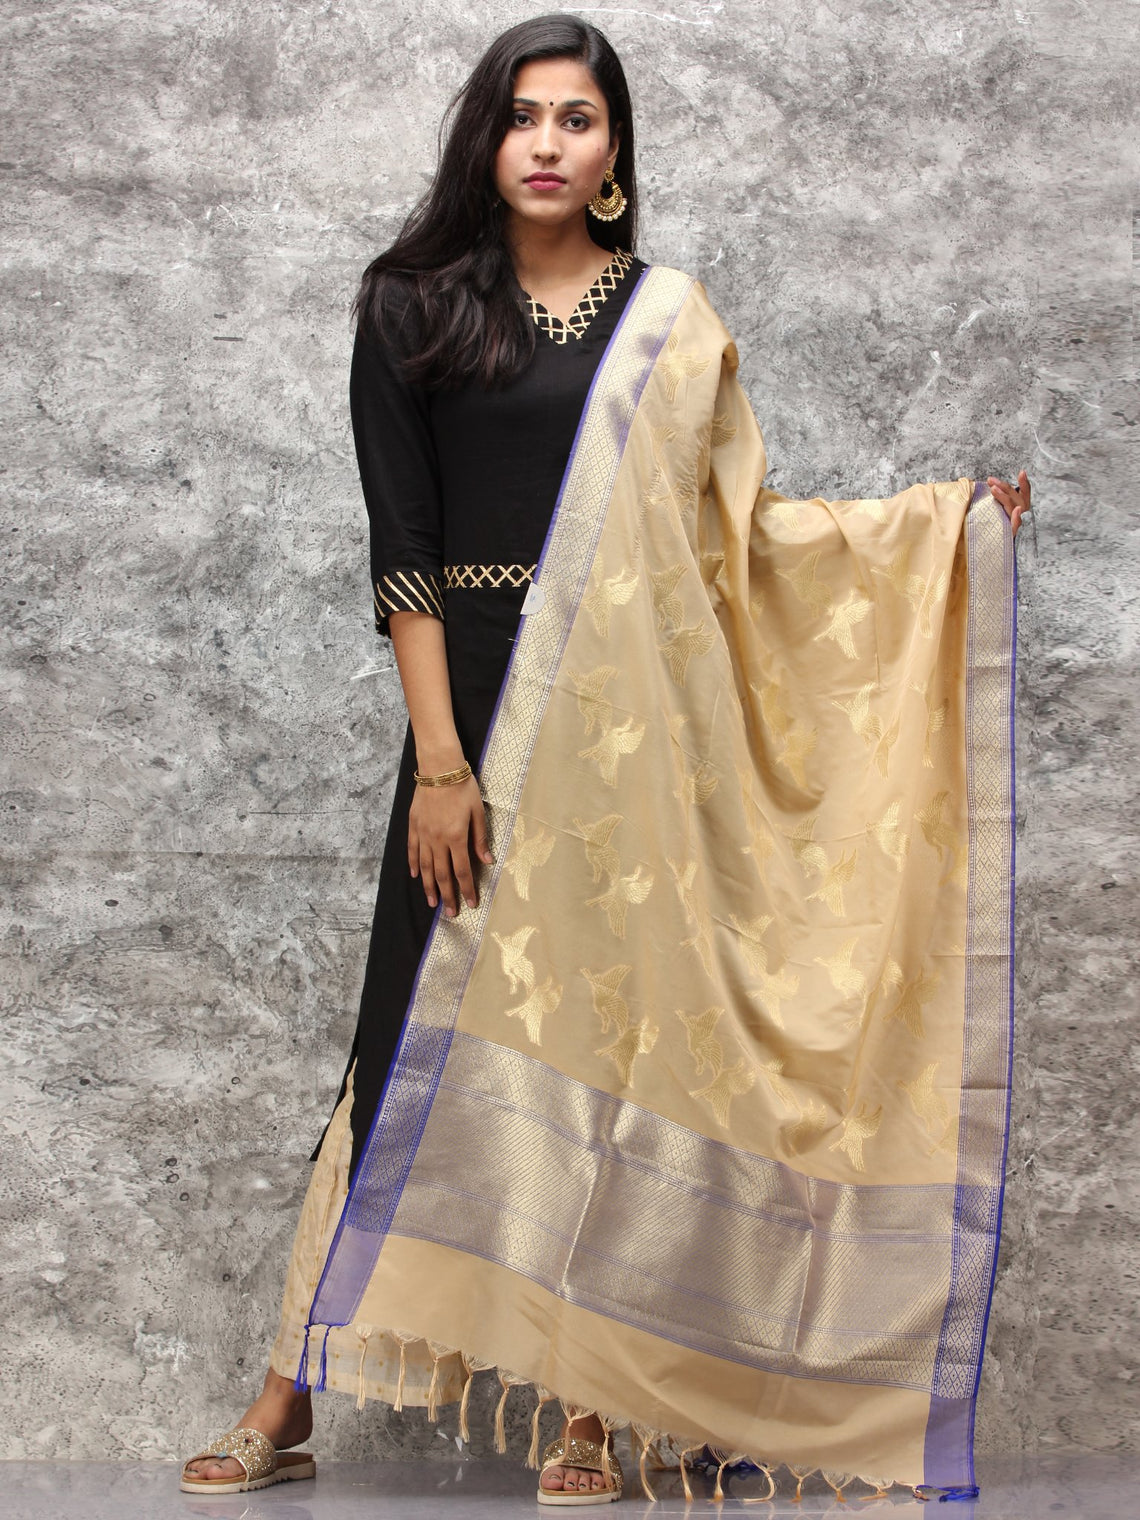 Banarasi Kanni Silk Dupatta With Zari Work - Beige & Gold - D04170889